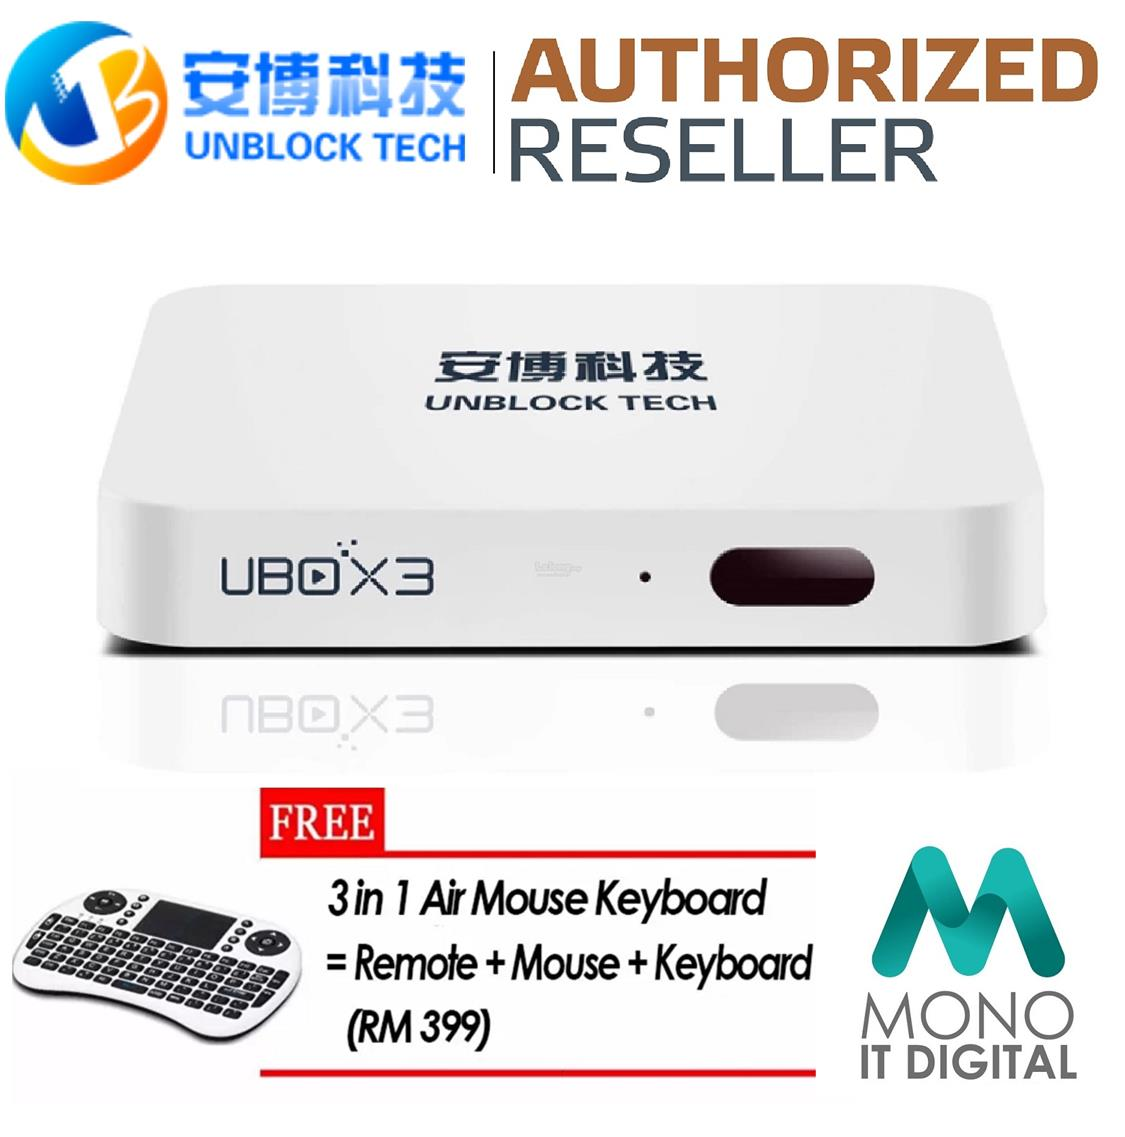 Unblock Tech Gen 3 S900 Pro 16G TV Box UBOX - MYIPTV Gen3 UBTV